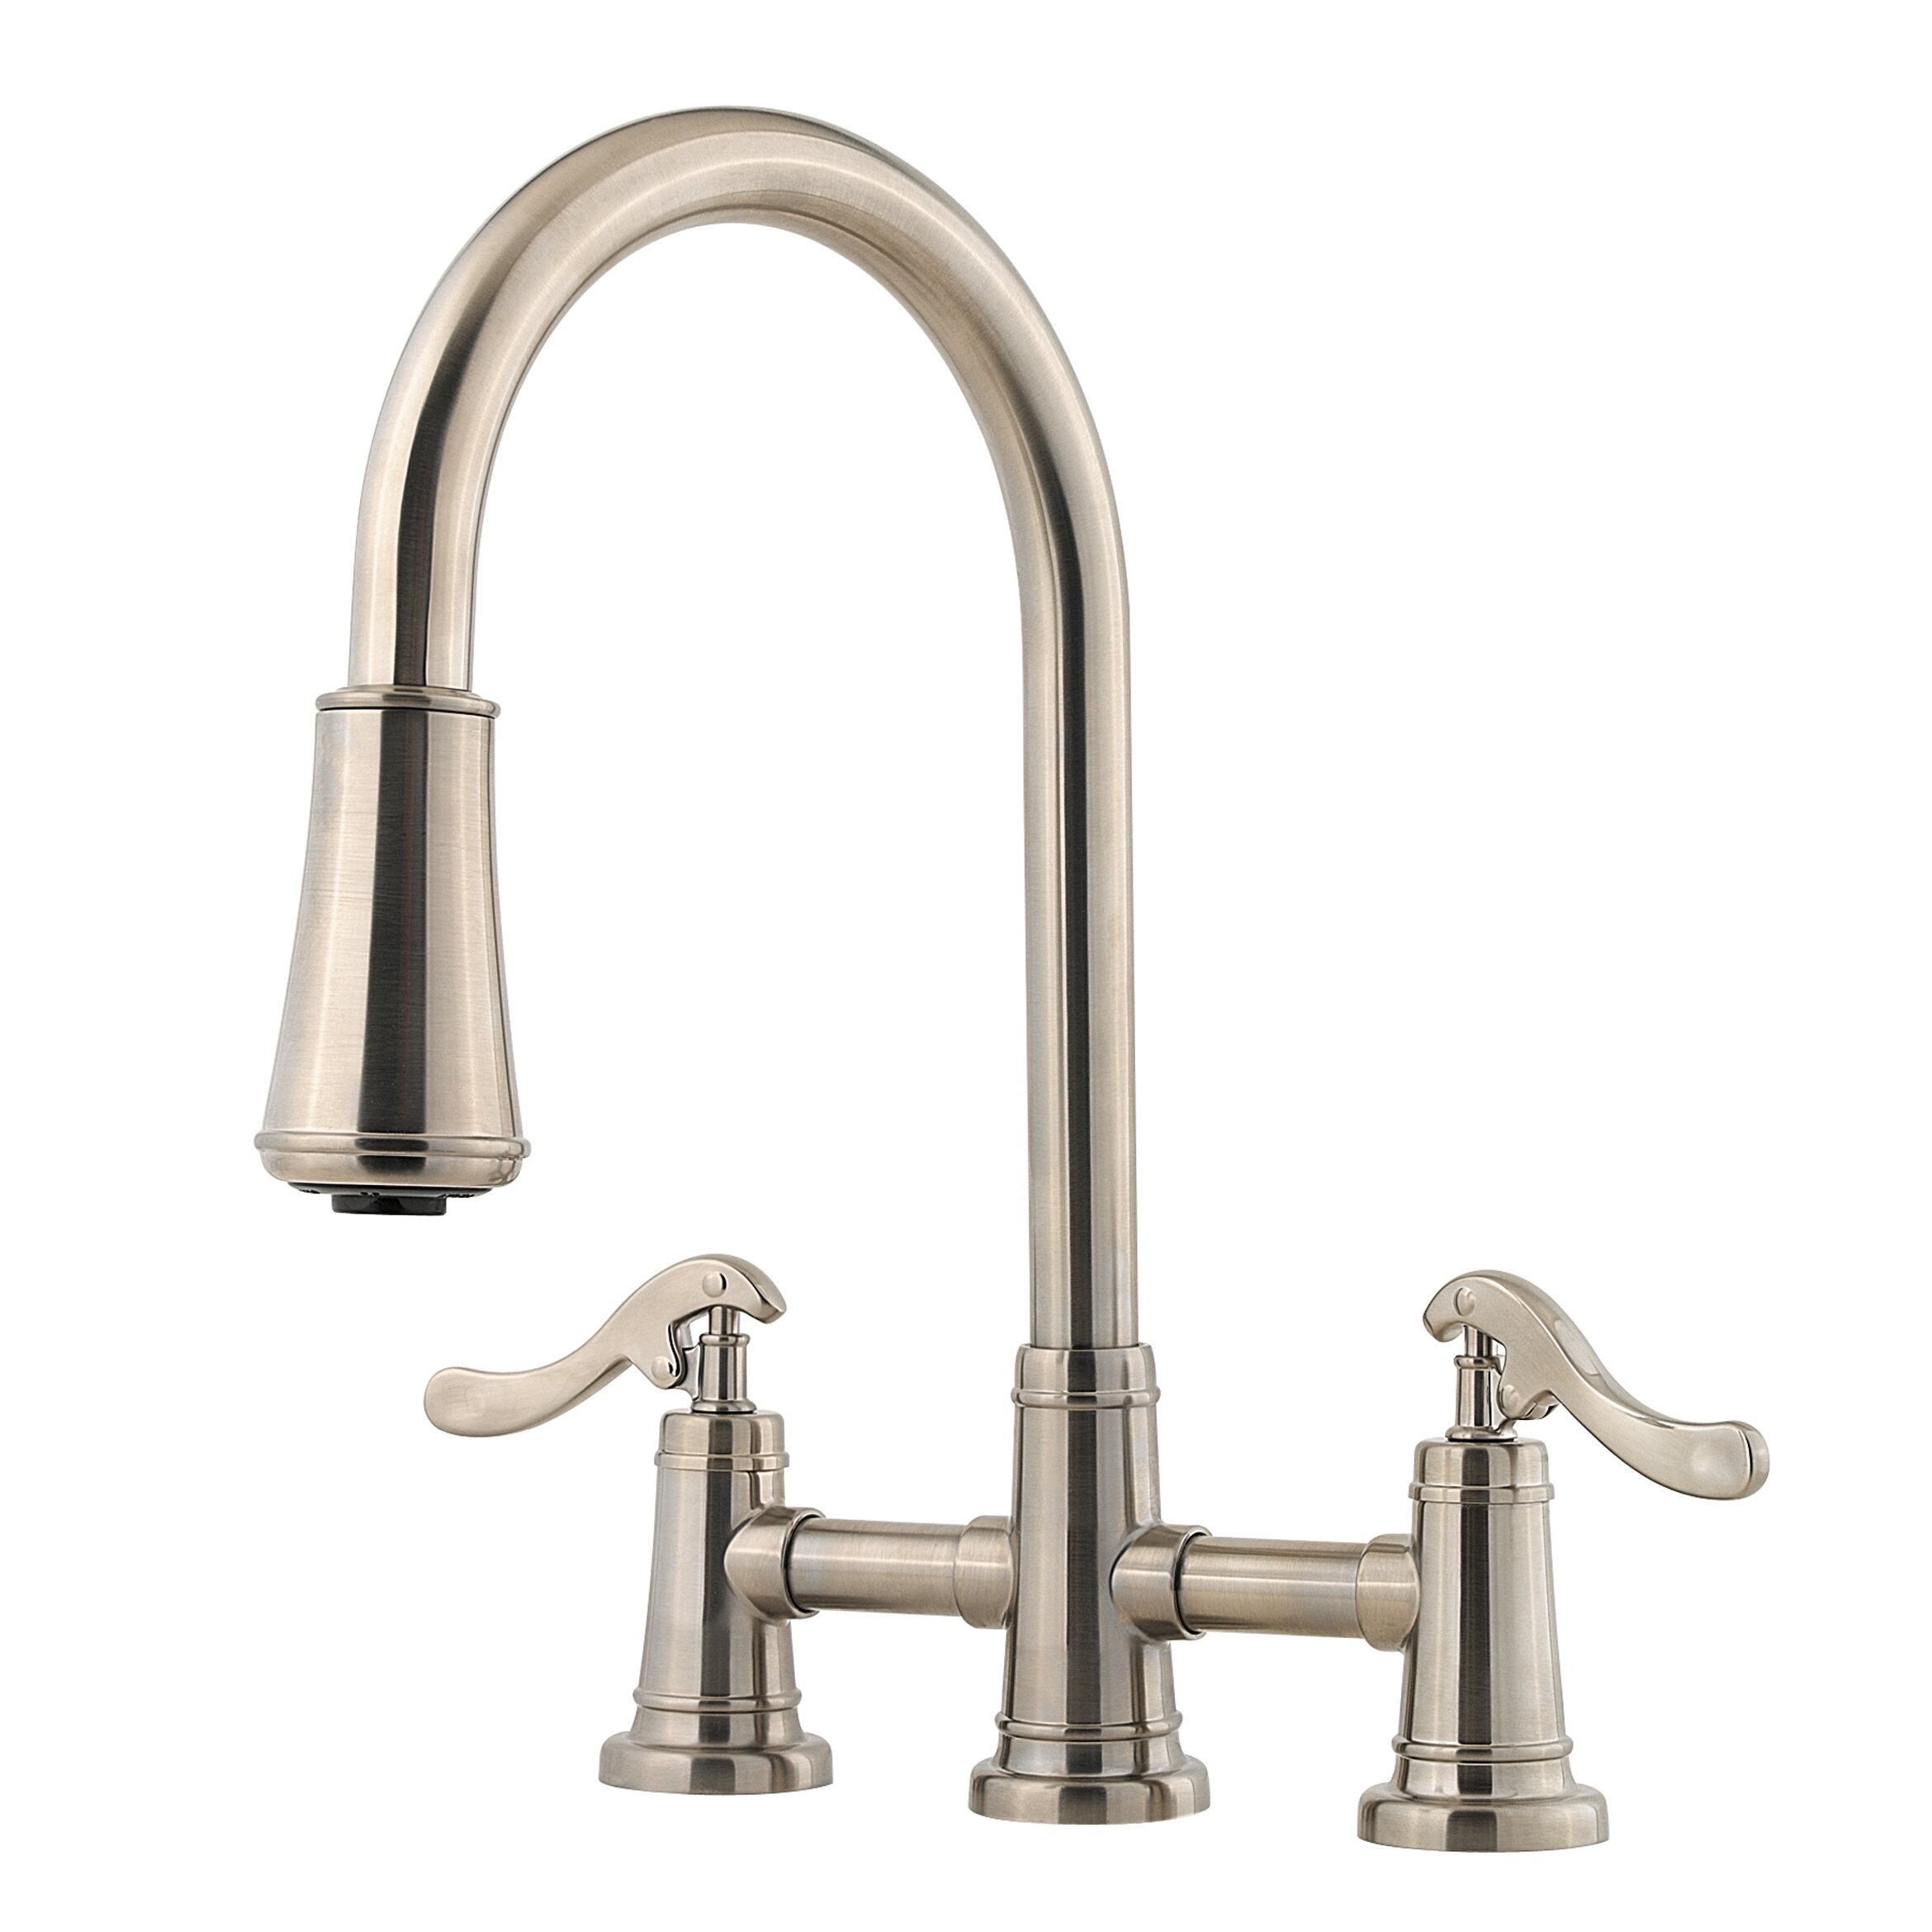 Pfister Ashfield Double Handle Deck Mounted Kitchen Faucet Reviews Wayfair